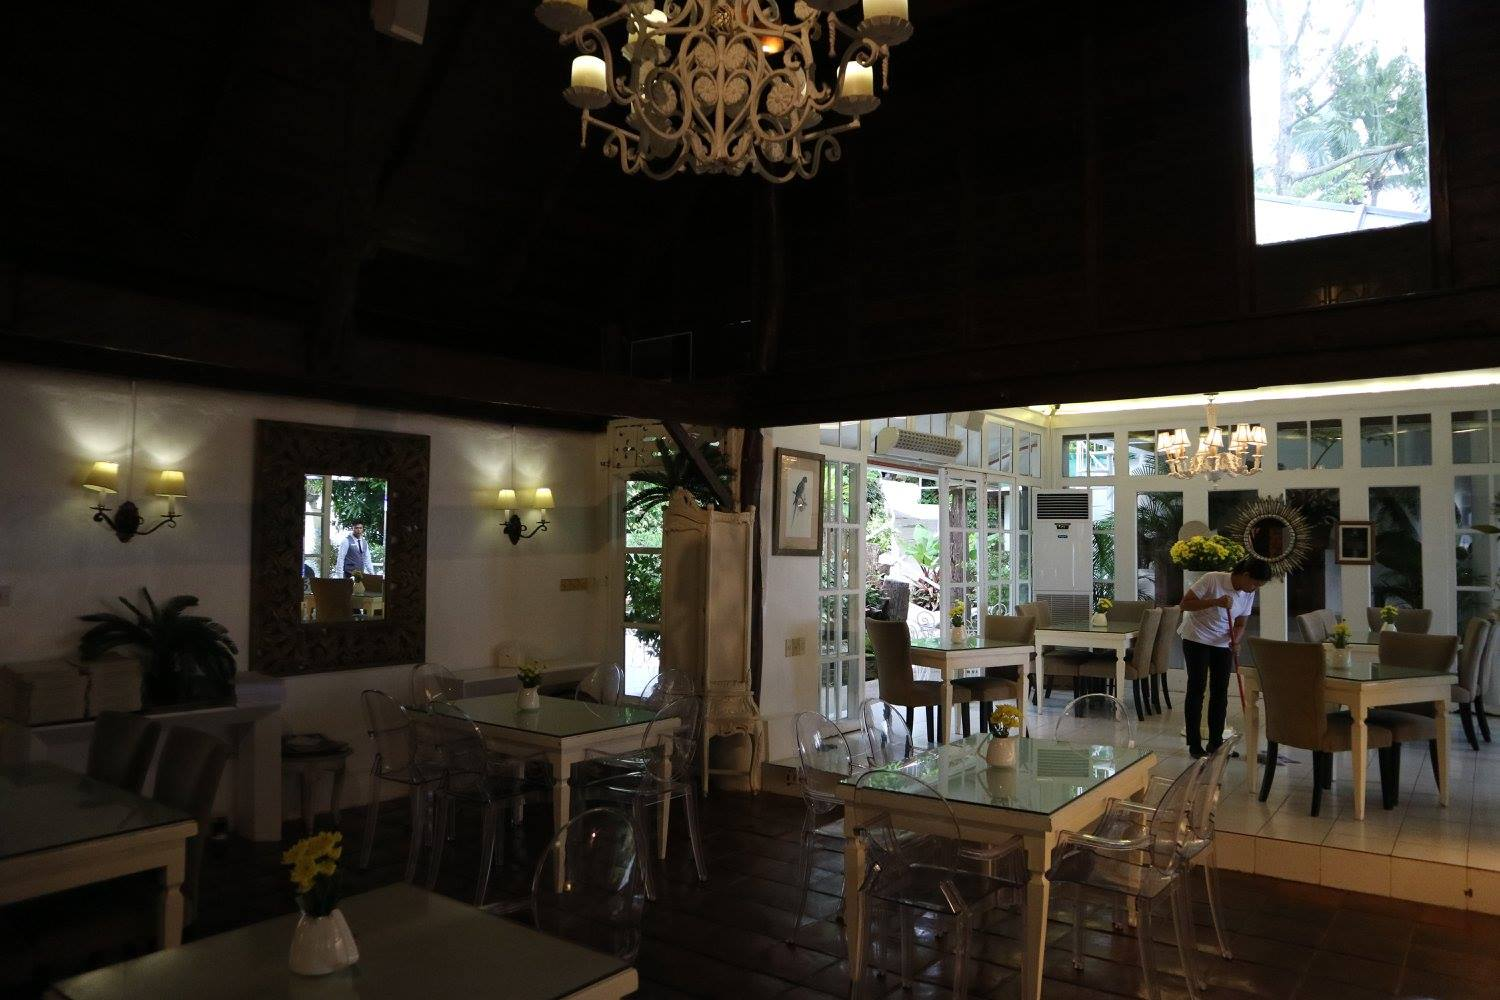 Another look inside the rustic main dining area